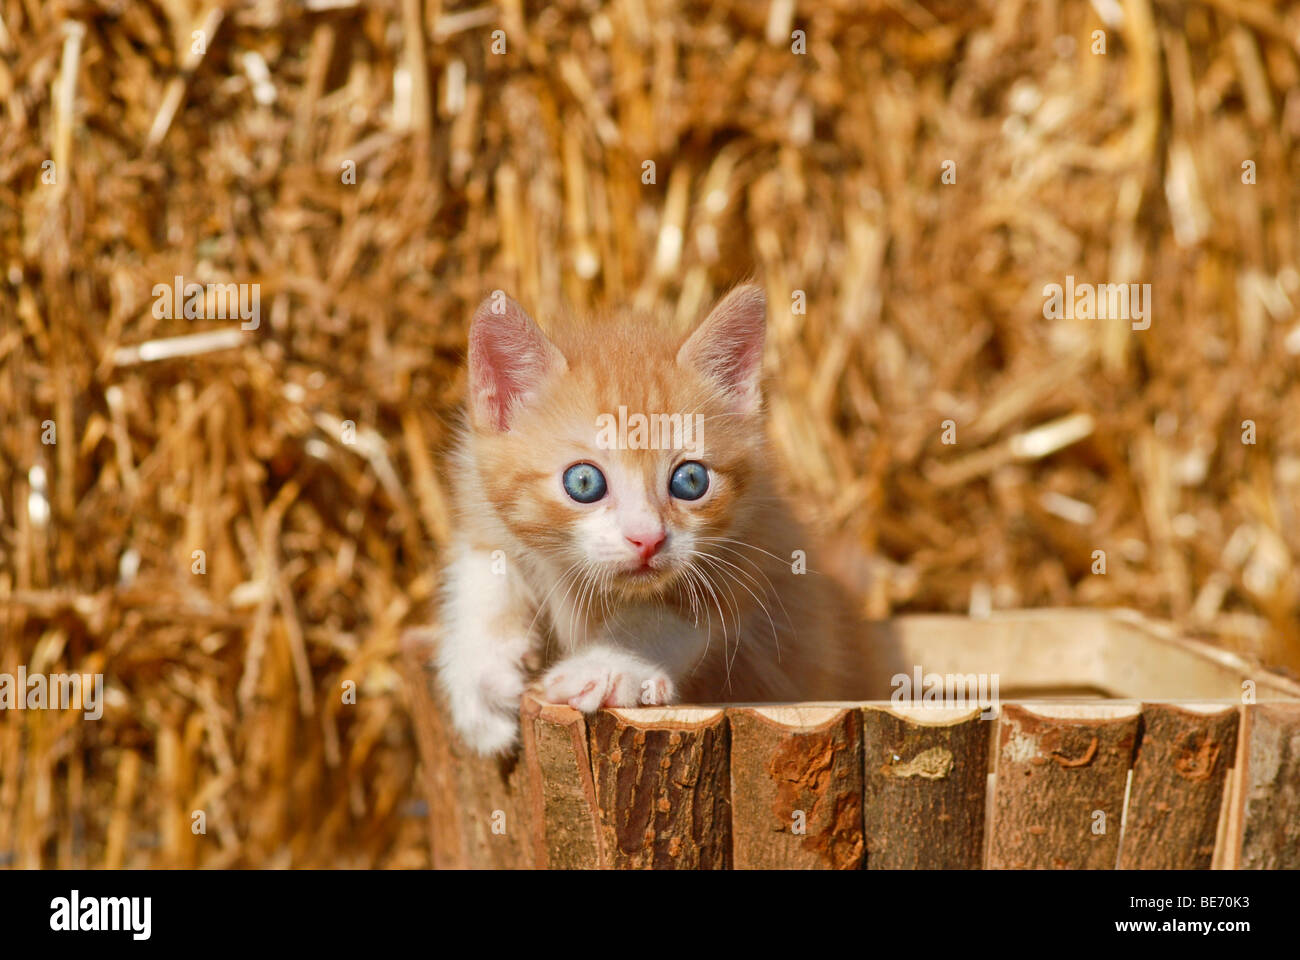 Domestic cat, kitten in a wooden box in front of straw - Stock Image